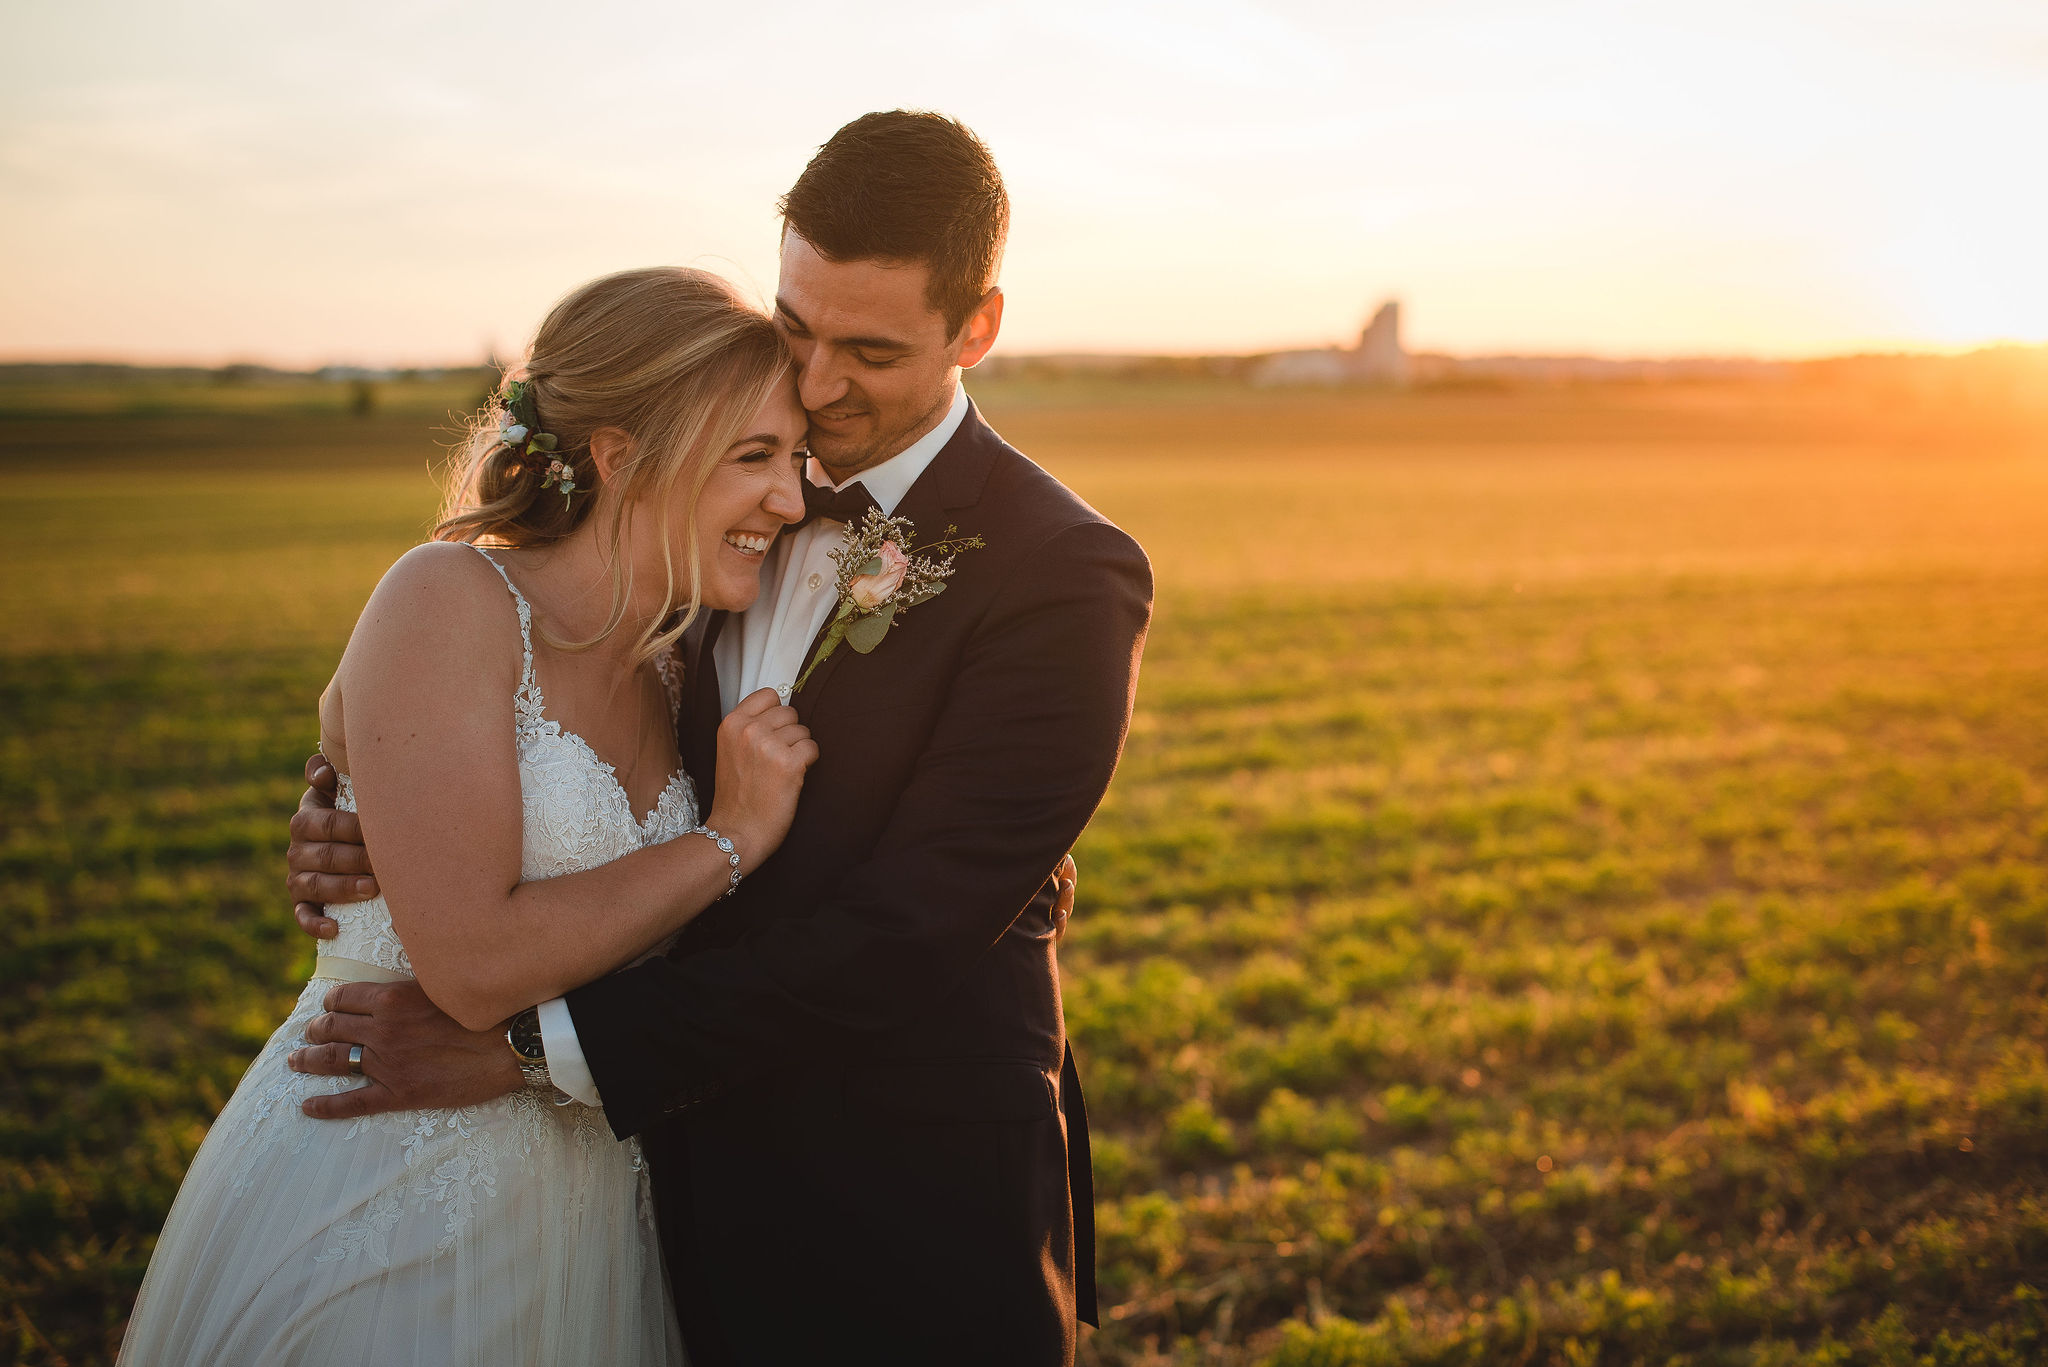 country field bride and groom portrait during golden hour